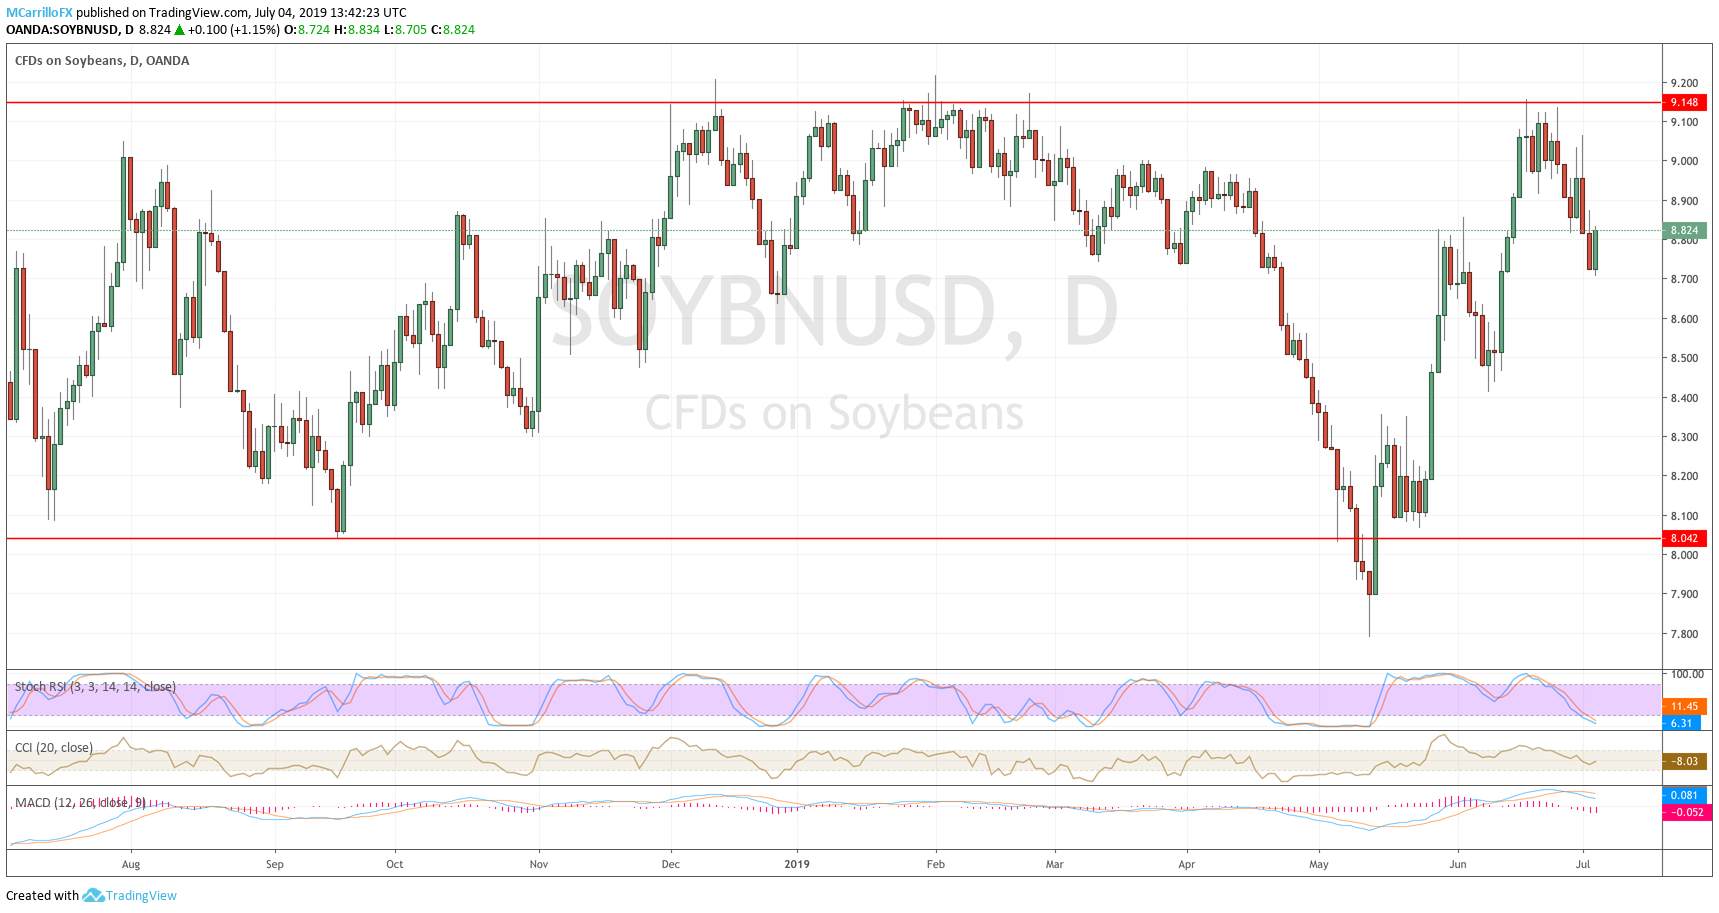 Soybean daily prices chart July 4